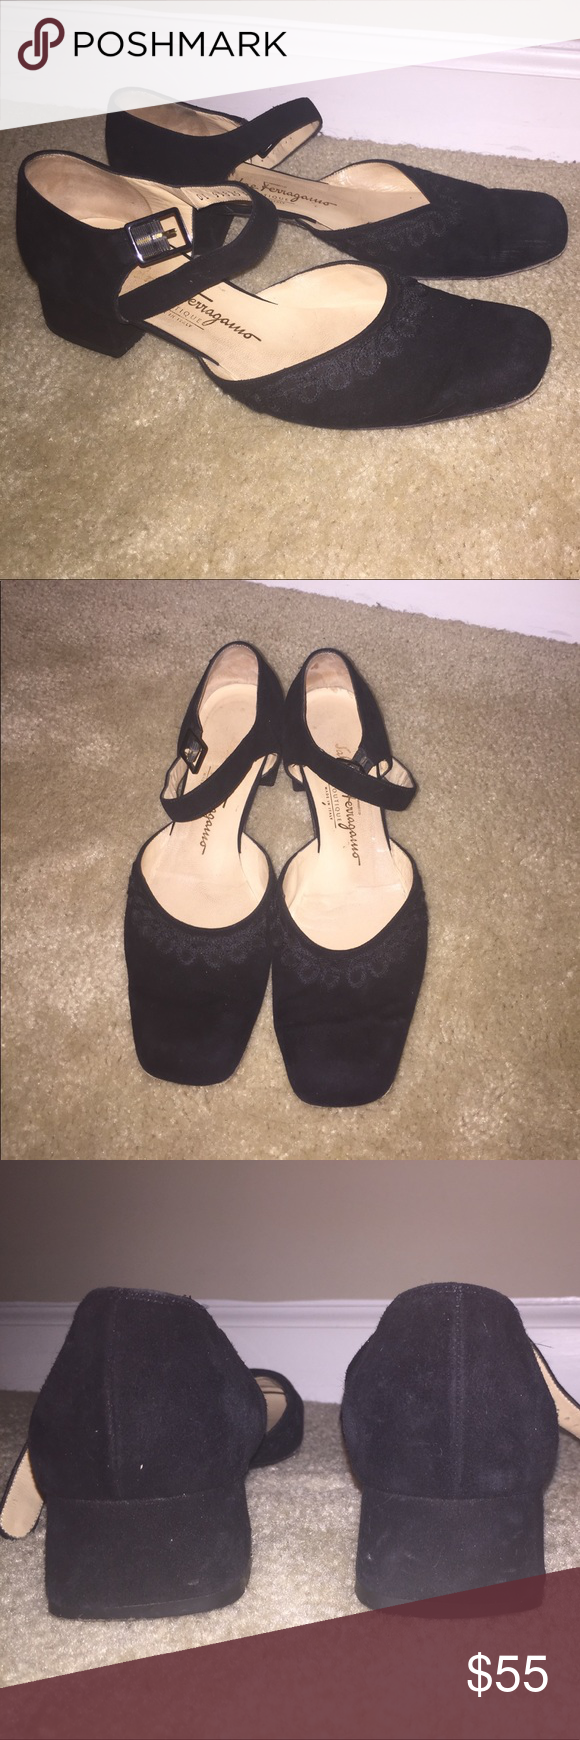 Velvety Ferragamo Black Shoes Beautiful older pair of Ferragamo Boutique shoes with ankle strap and wonderful stitching around soft velvety feel exterior. These shoes are a 9B, made in Italy. As seen in the pictures, these shoes show moderate signs of wear. Offers welcome. Ferragamo Shoes Heels